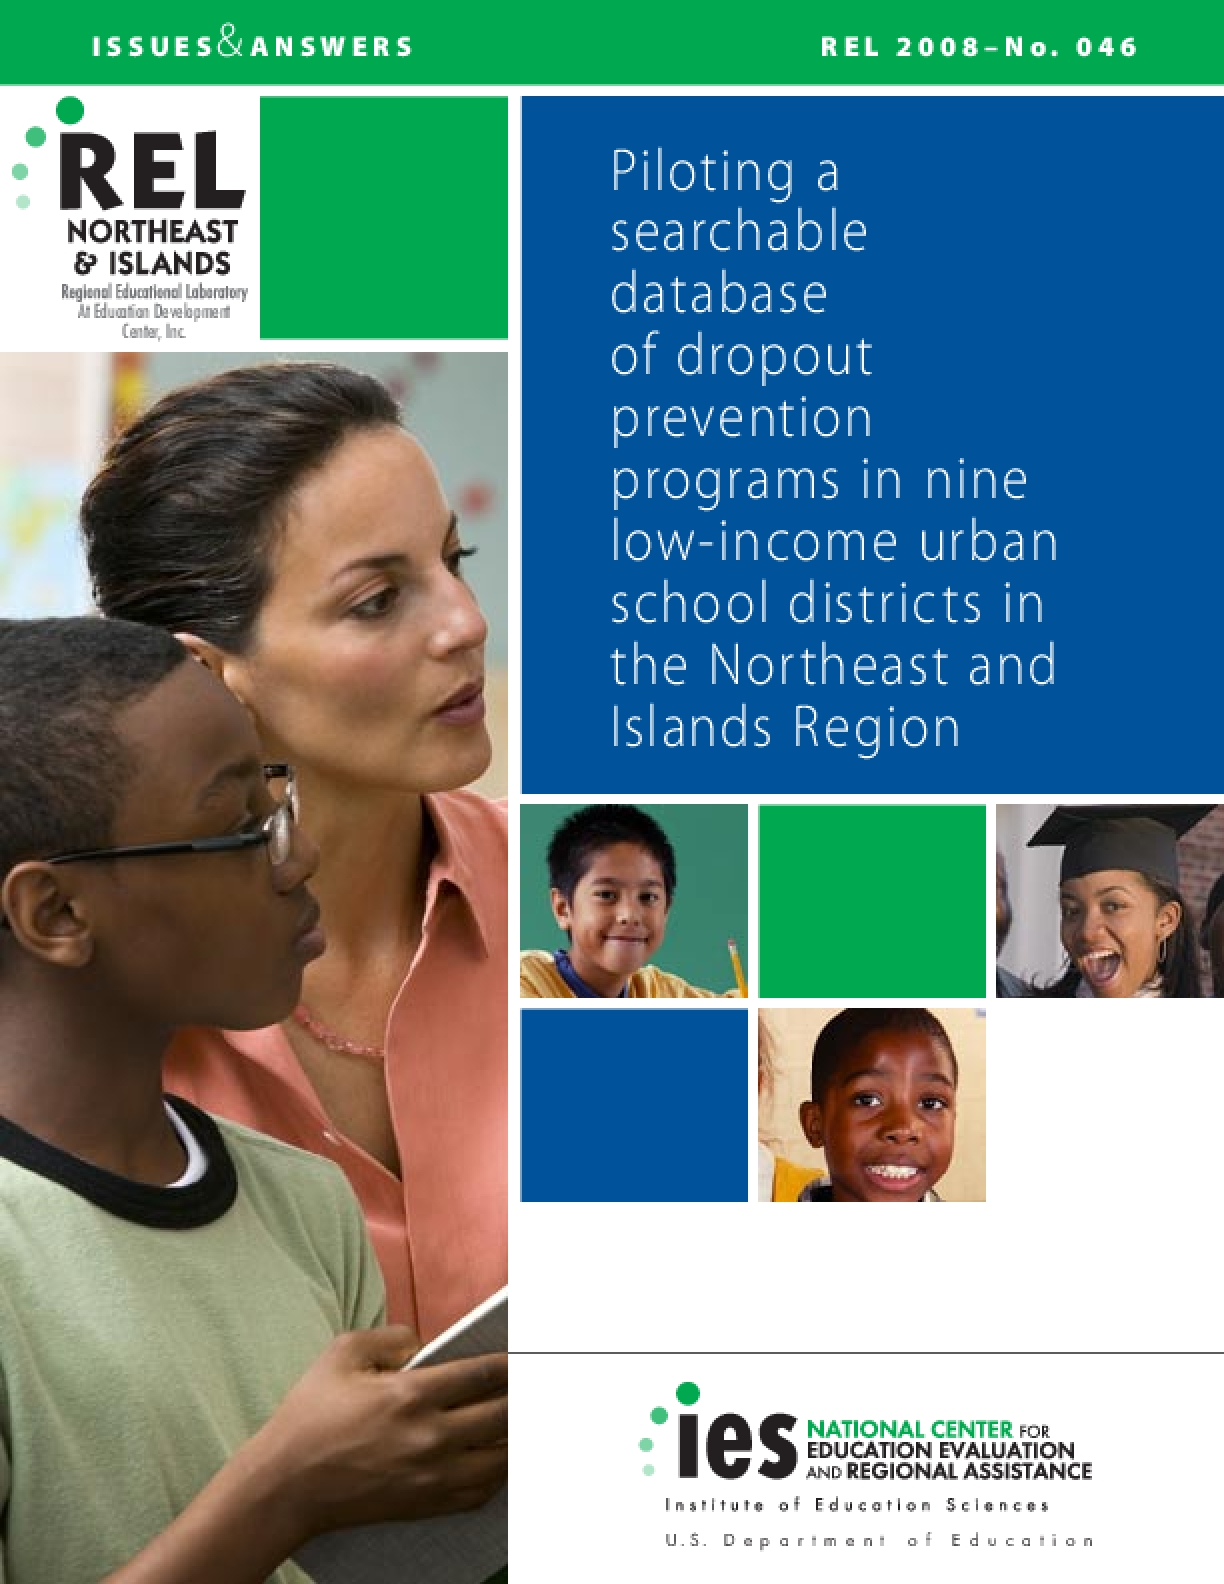 Piloting a Searchable Database of Dropout Prevention Programs in Nine Low-Income Urban School Districts in the Northeast and Islands Region